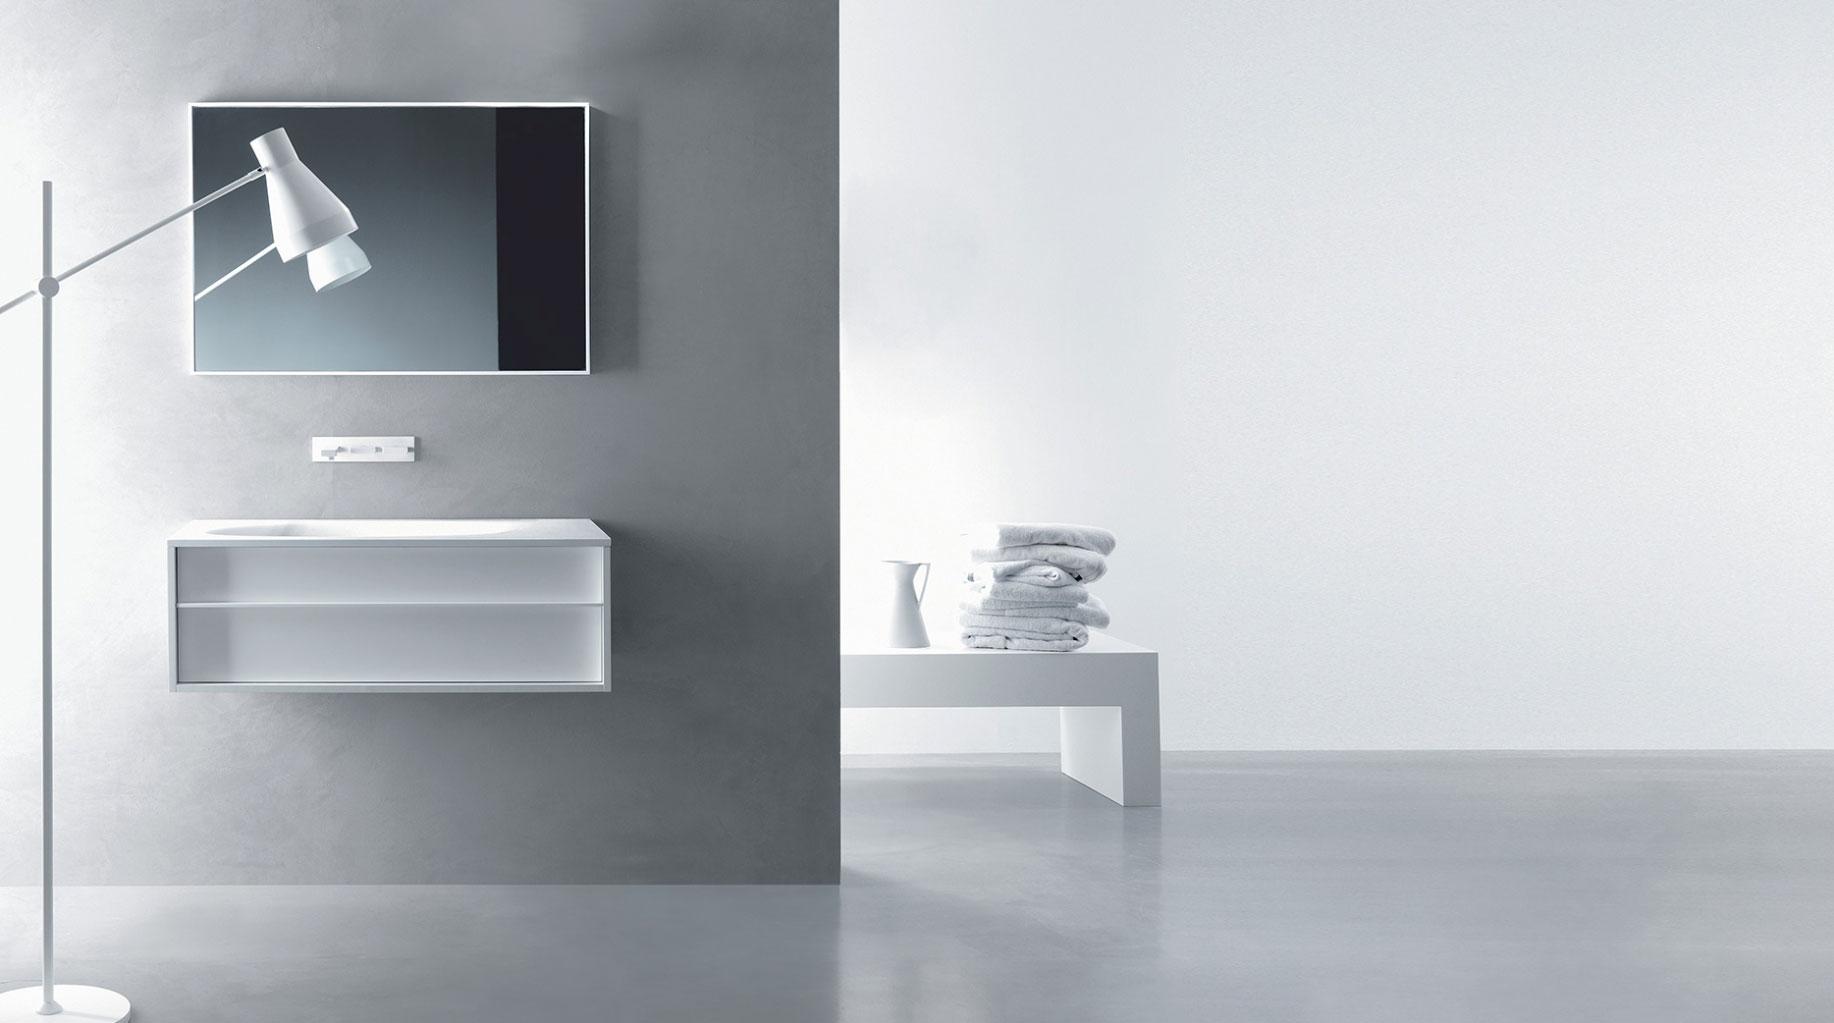 small modern wall-mounted bathroom vanity with integrated sink and wall-mounted faucet